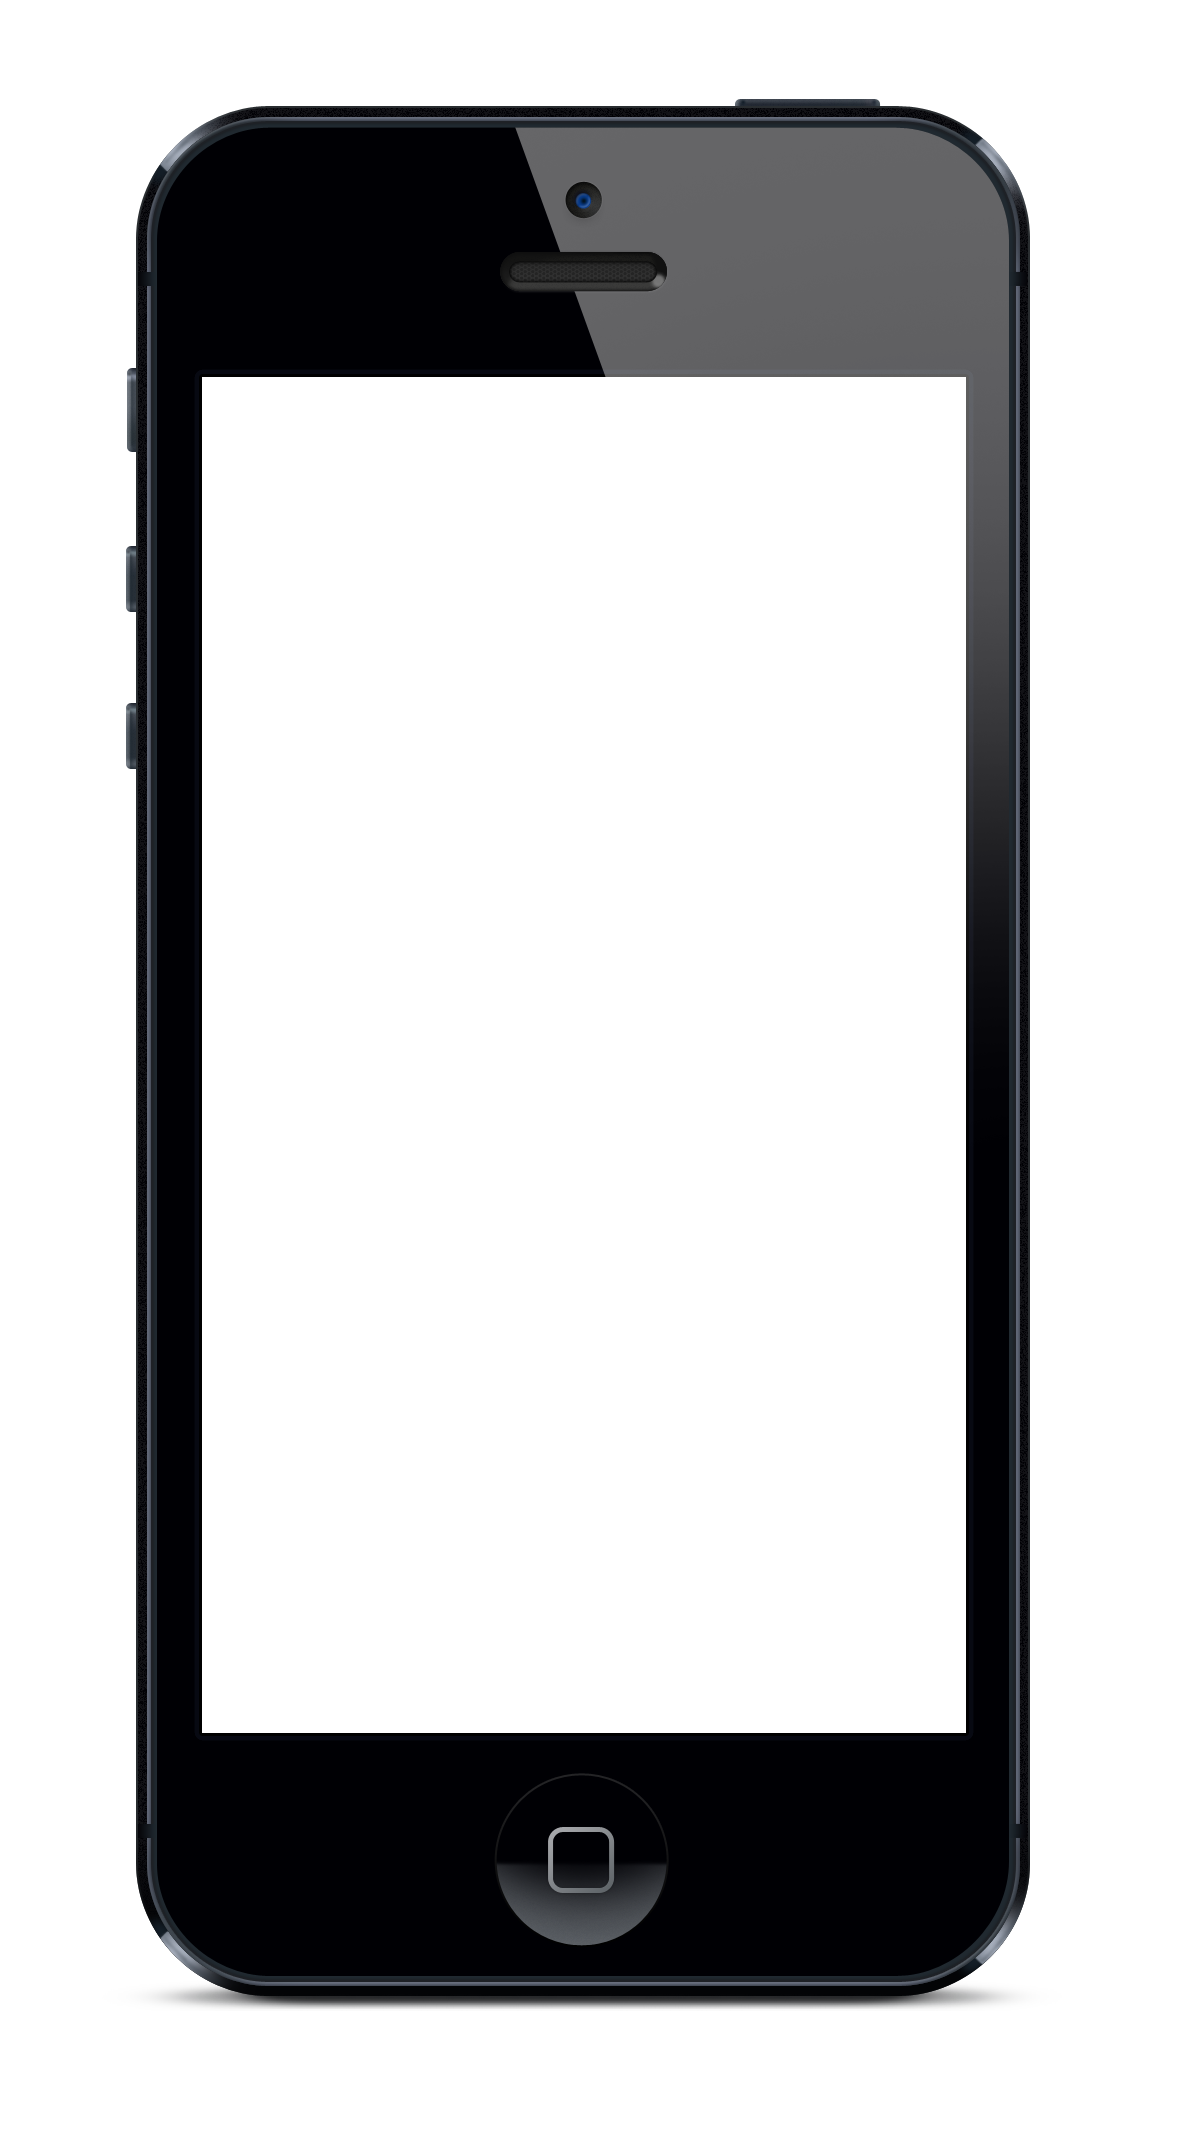 iphone5.png (1182×2144) Design, web, app, identity